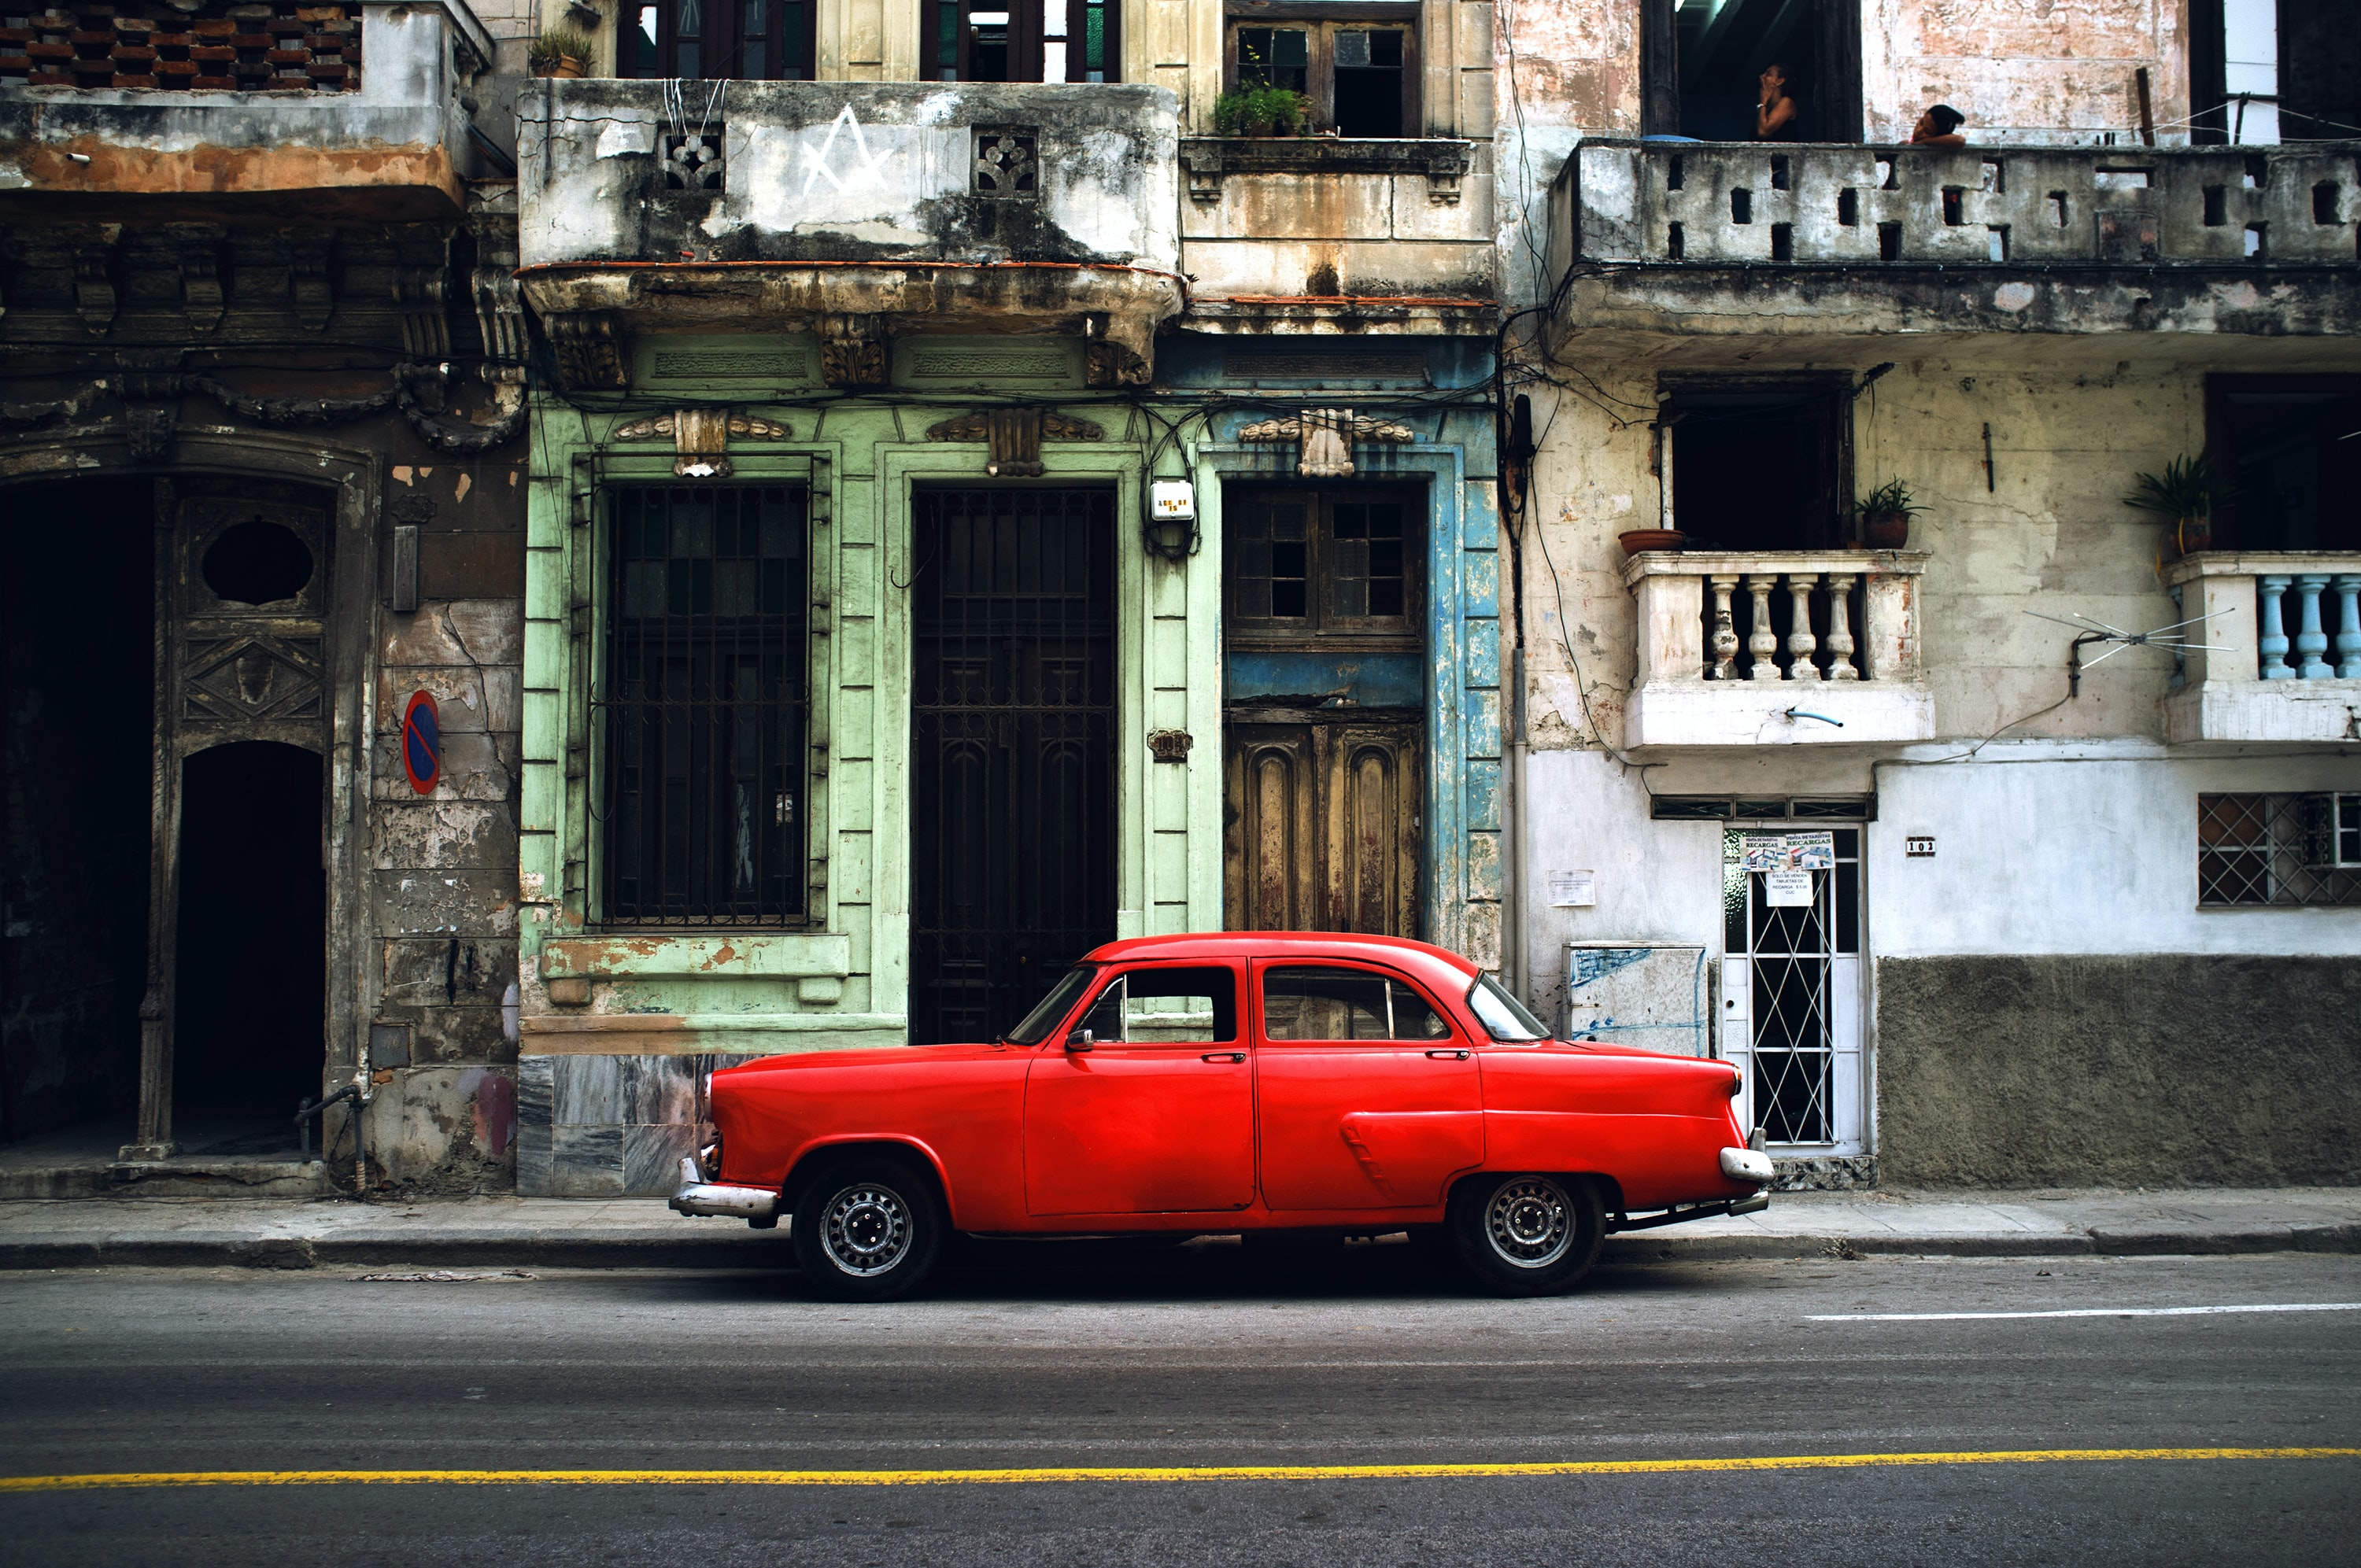 A red car driving in an old urban city, Habana Vieja